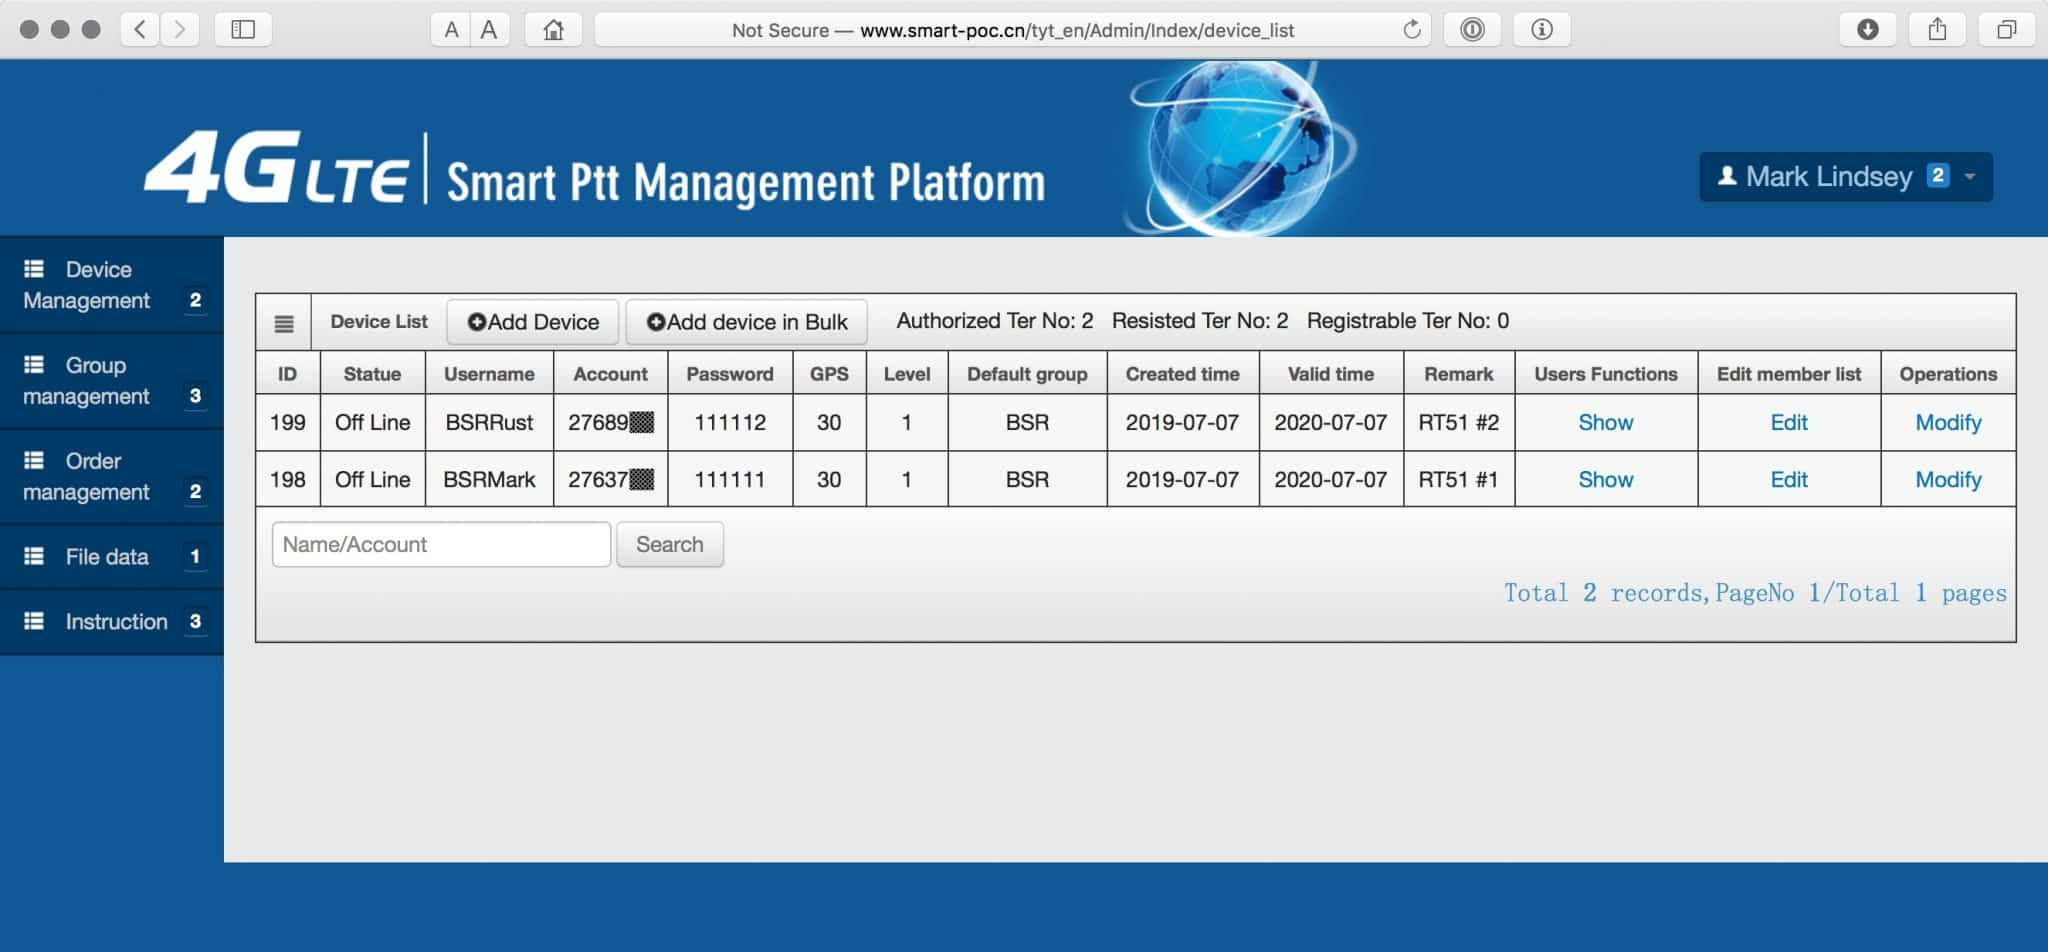 A screenshot of the Smart Ptt Management Platform's Devices list